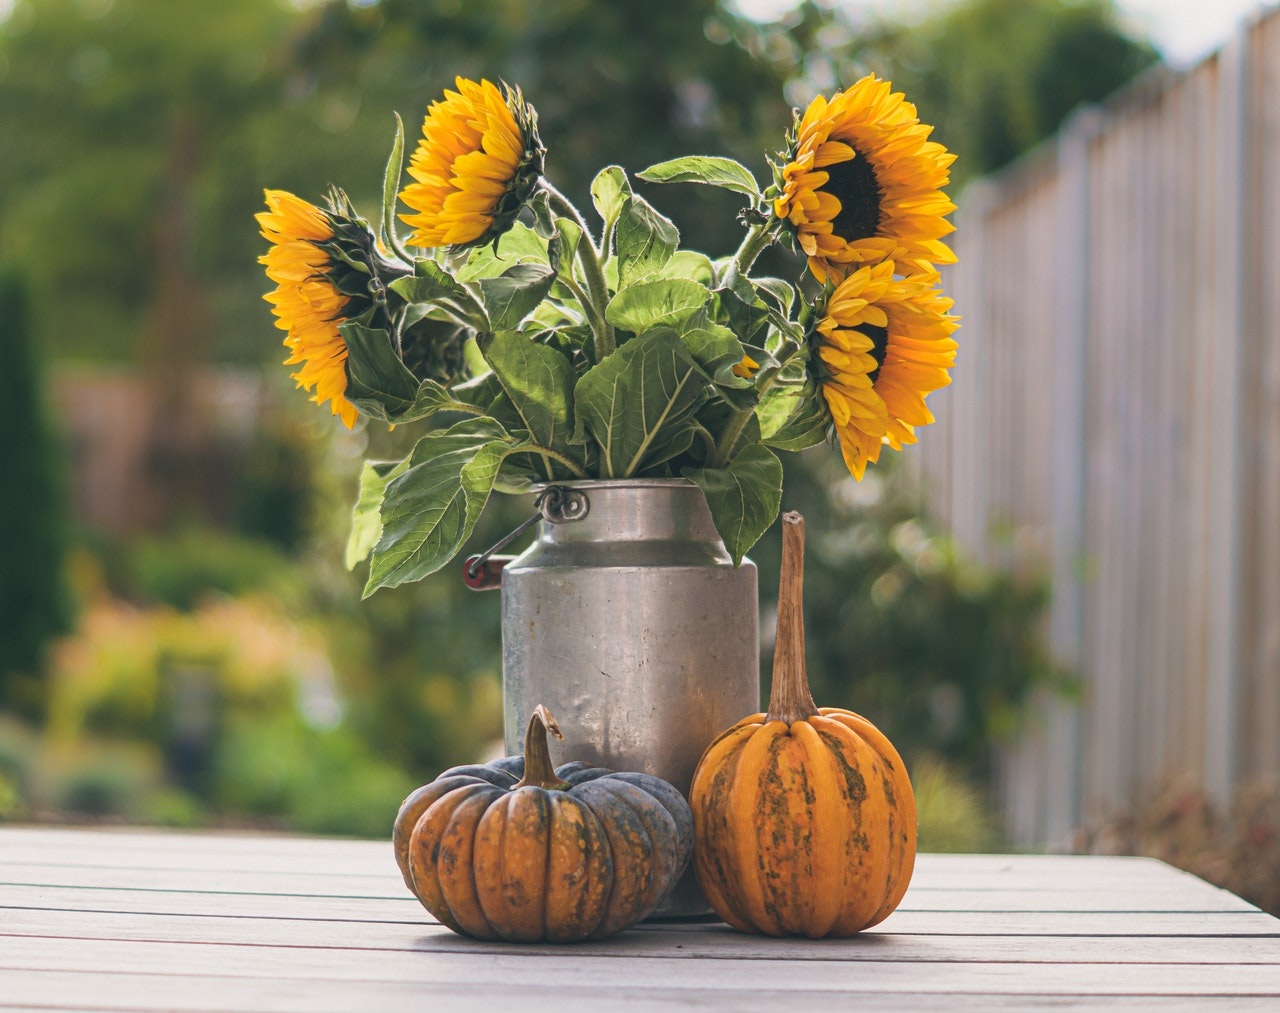 Decorating with fresh flowers this fall